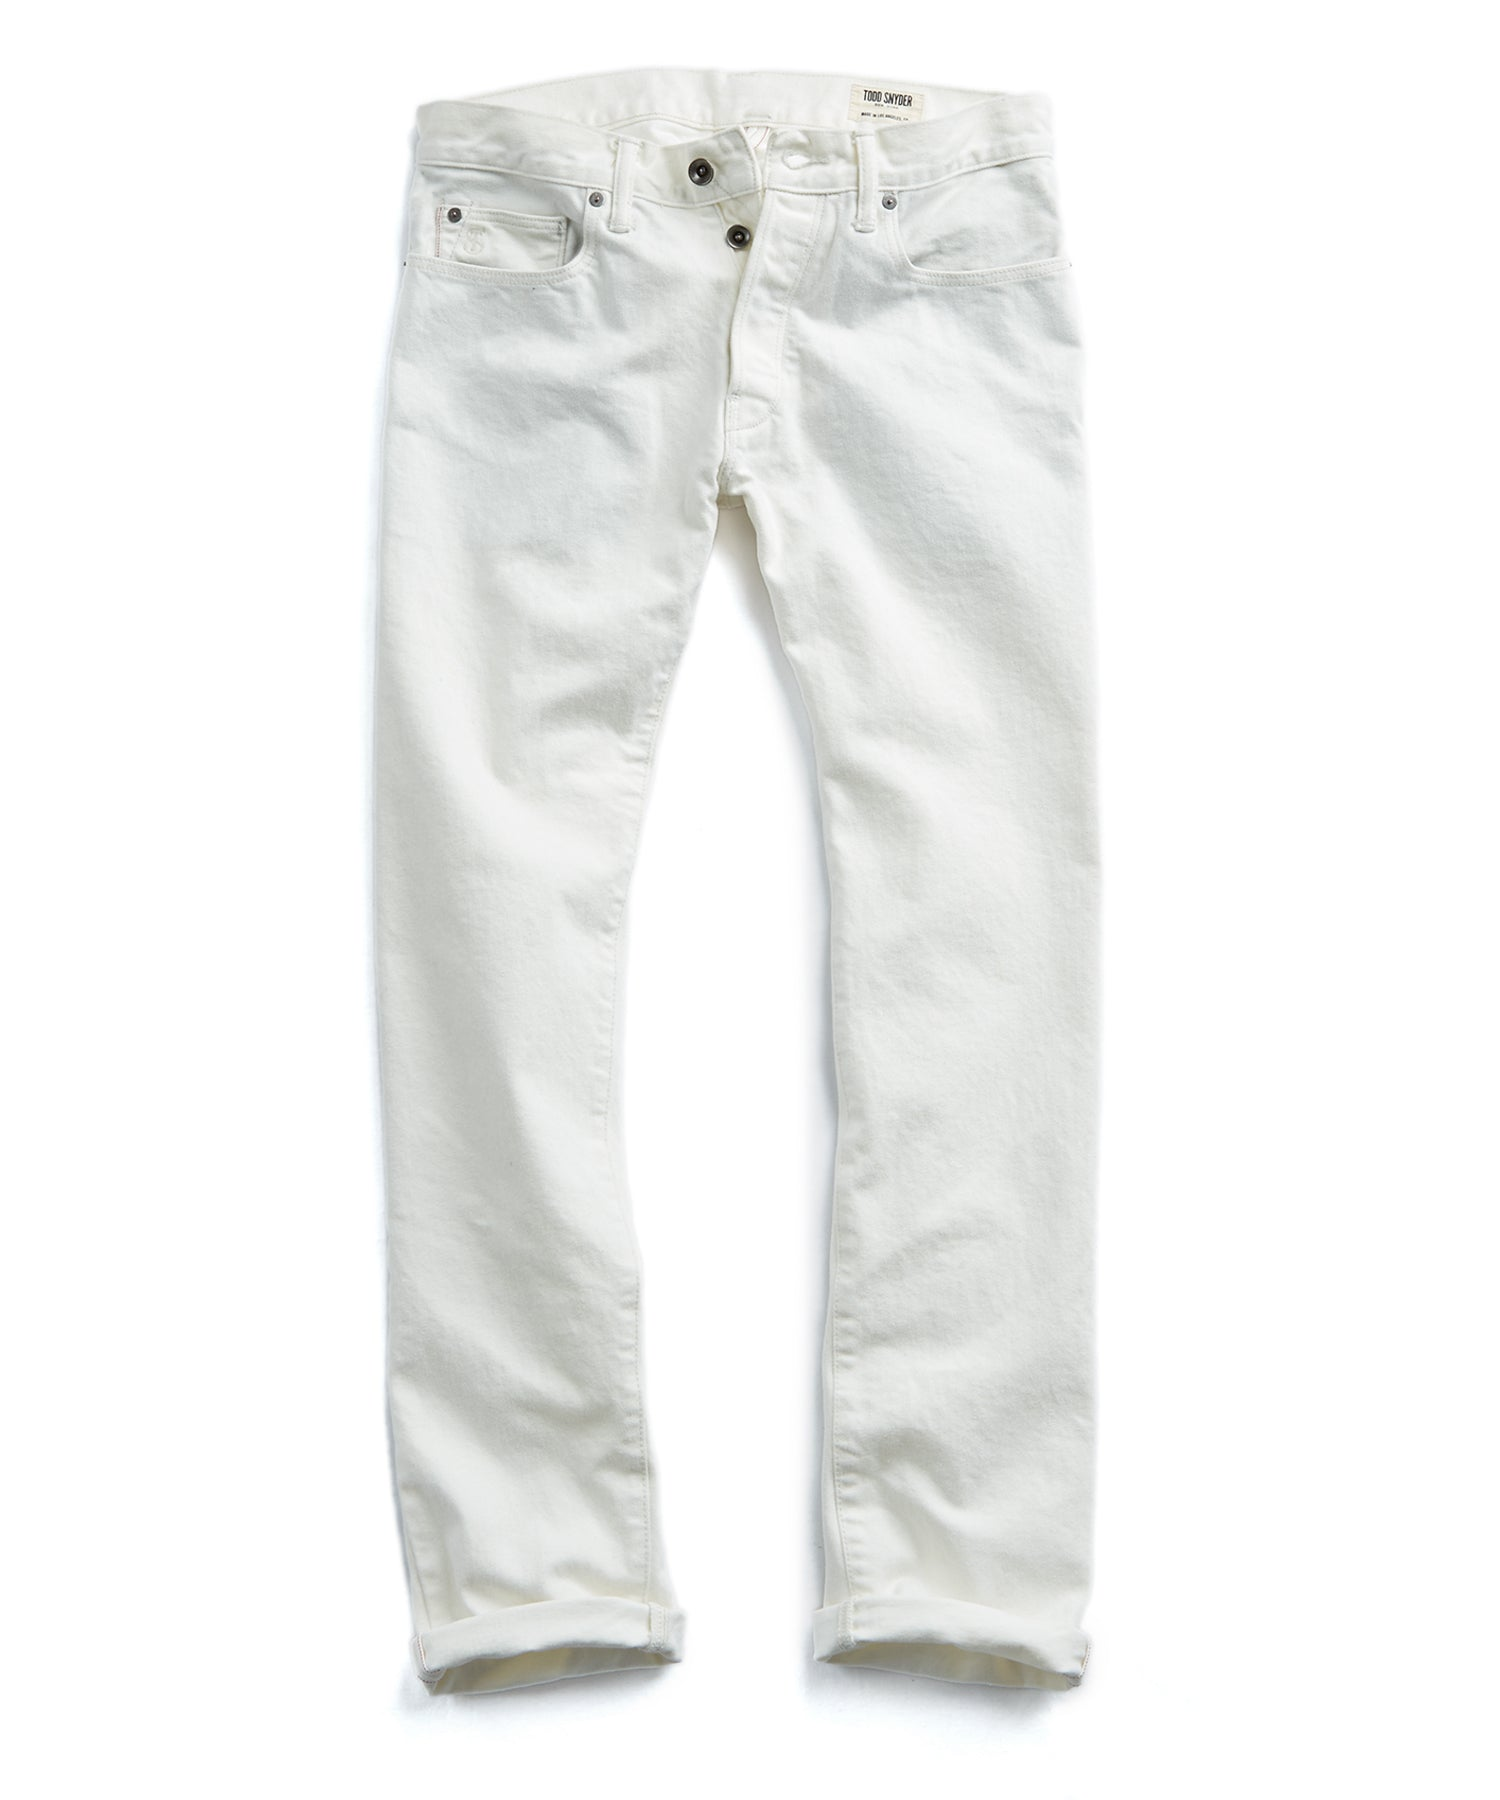 Made in L.A. Selvedge White Jean